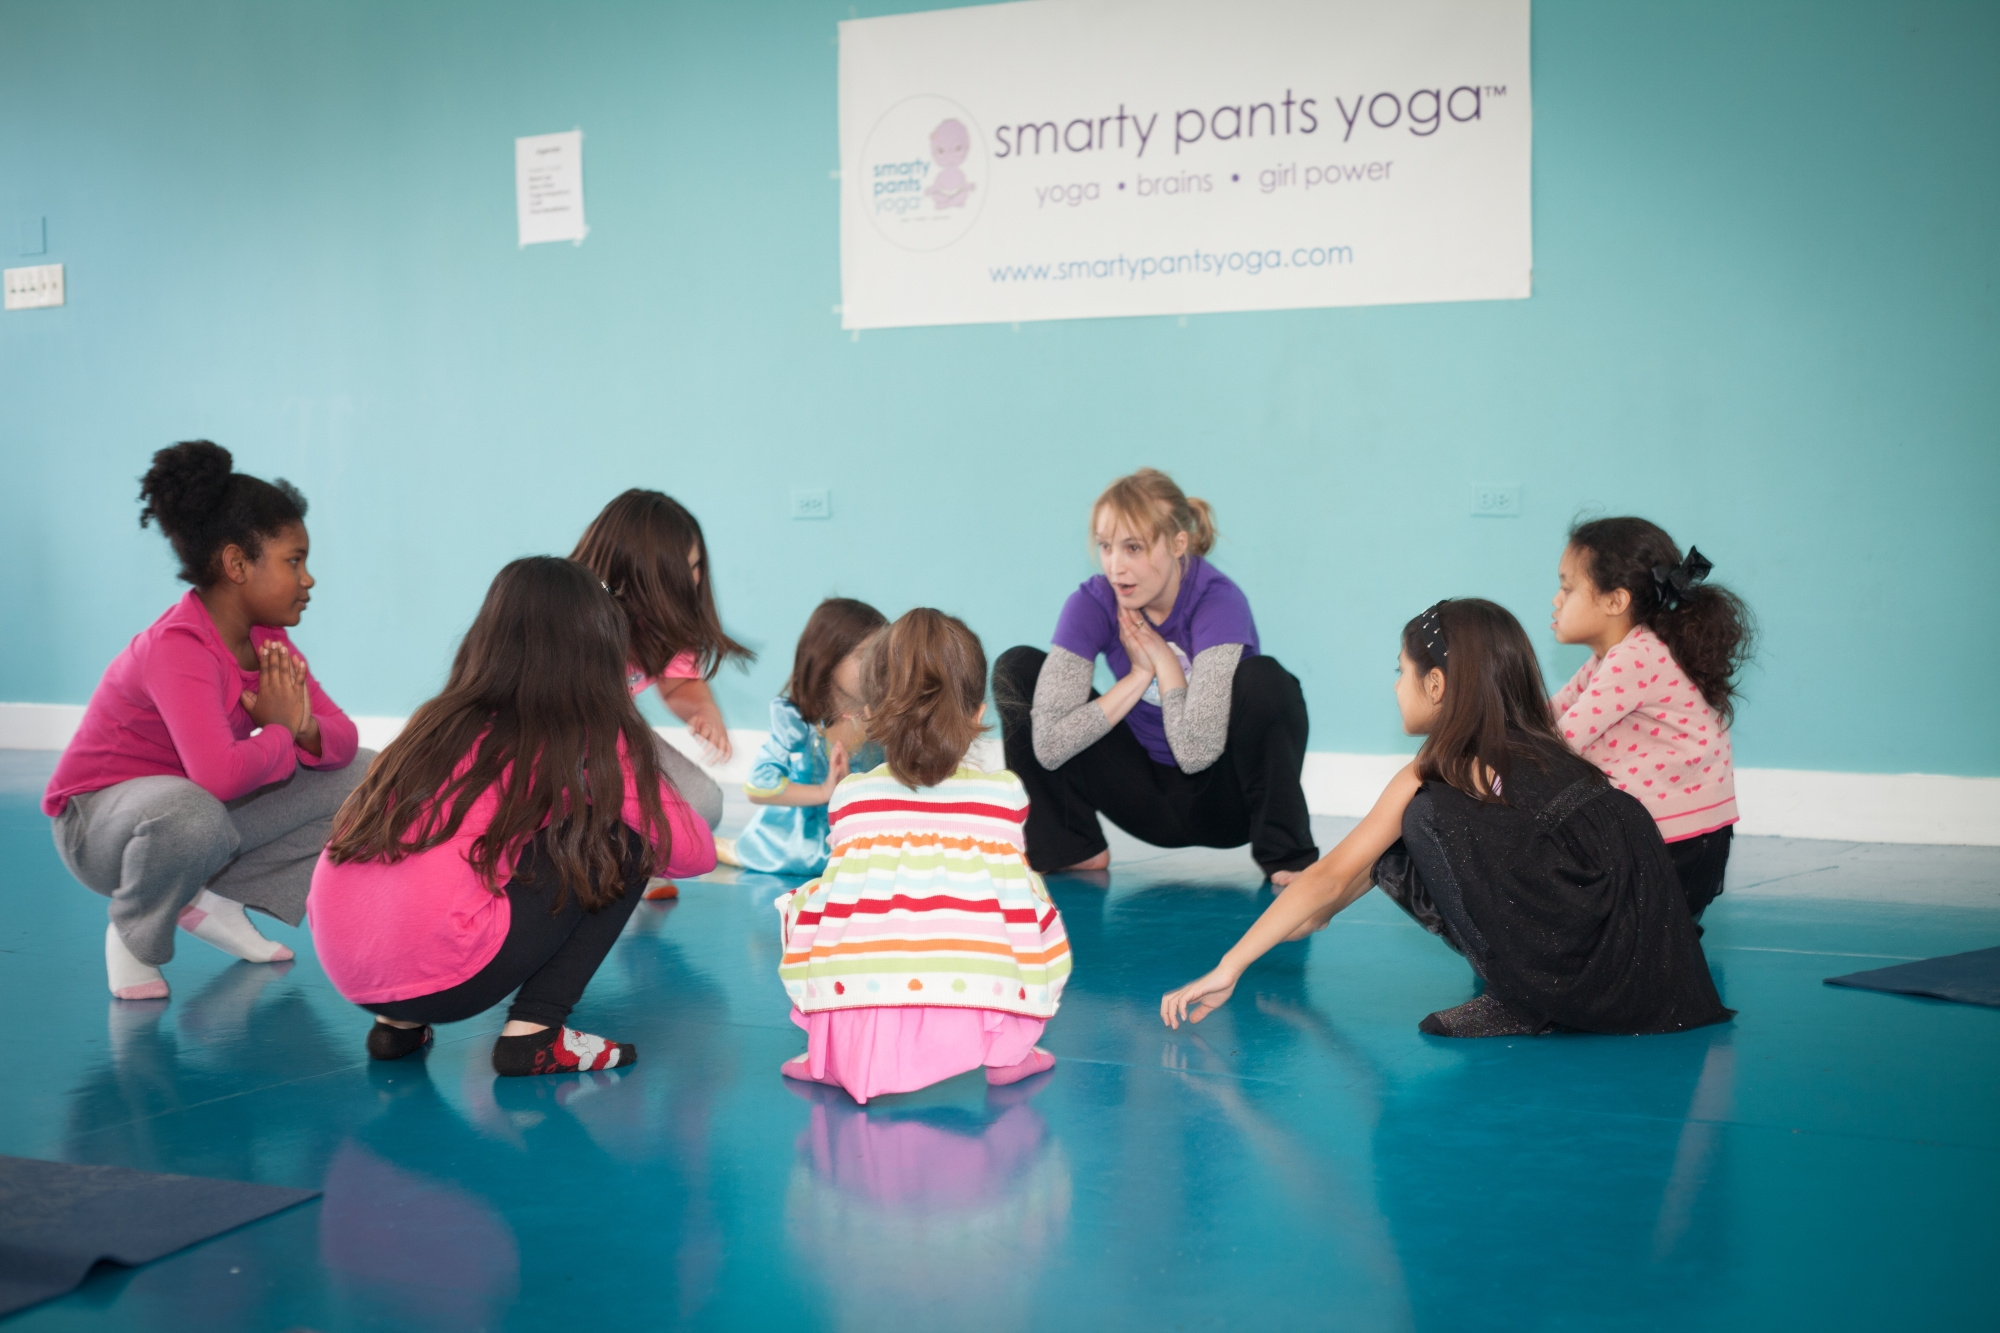 asweatlife_smarty pants yoga empowering girls across Chicago_2